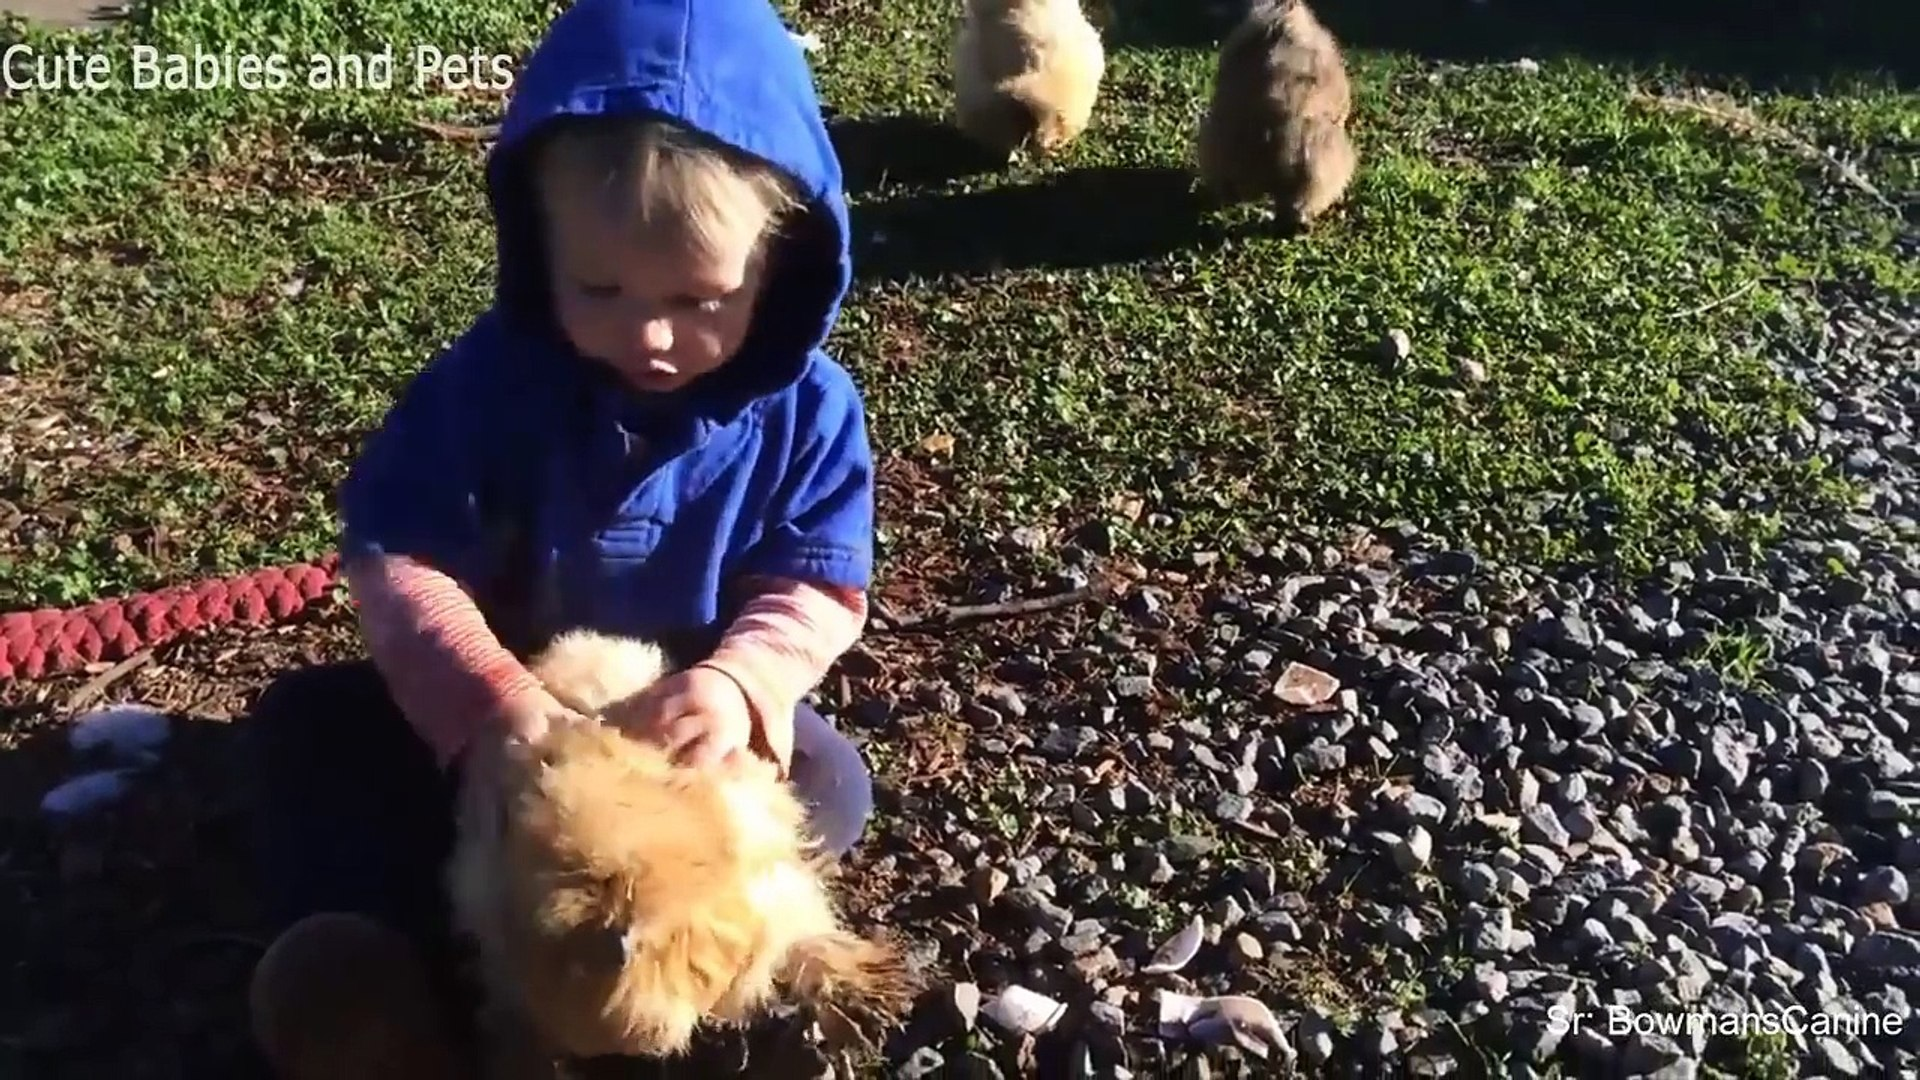 Funny Babies Cuddling Animals - Cute Babies and Pets Compilation